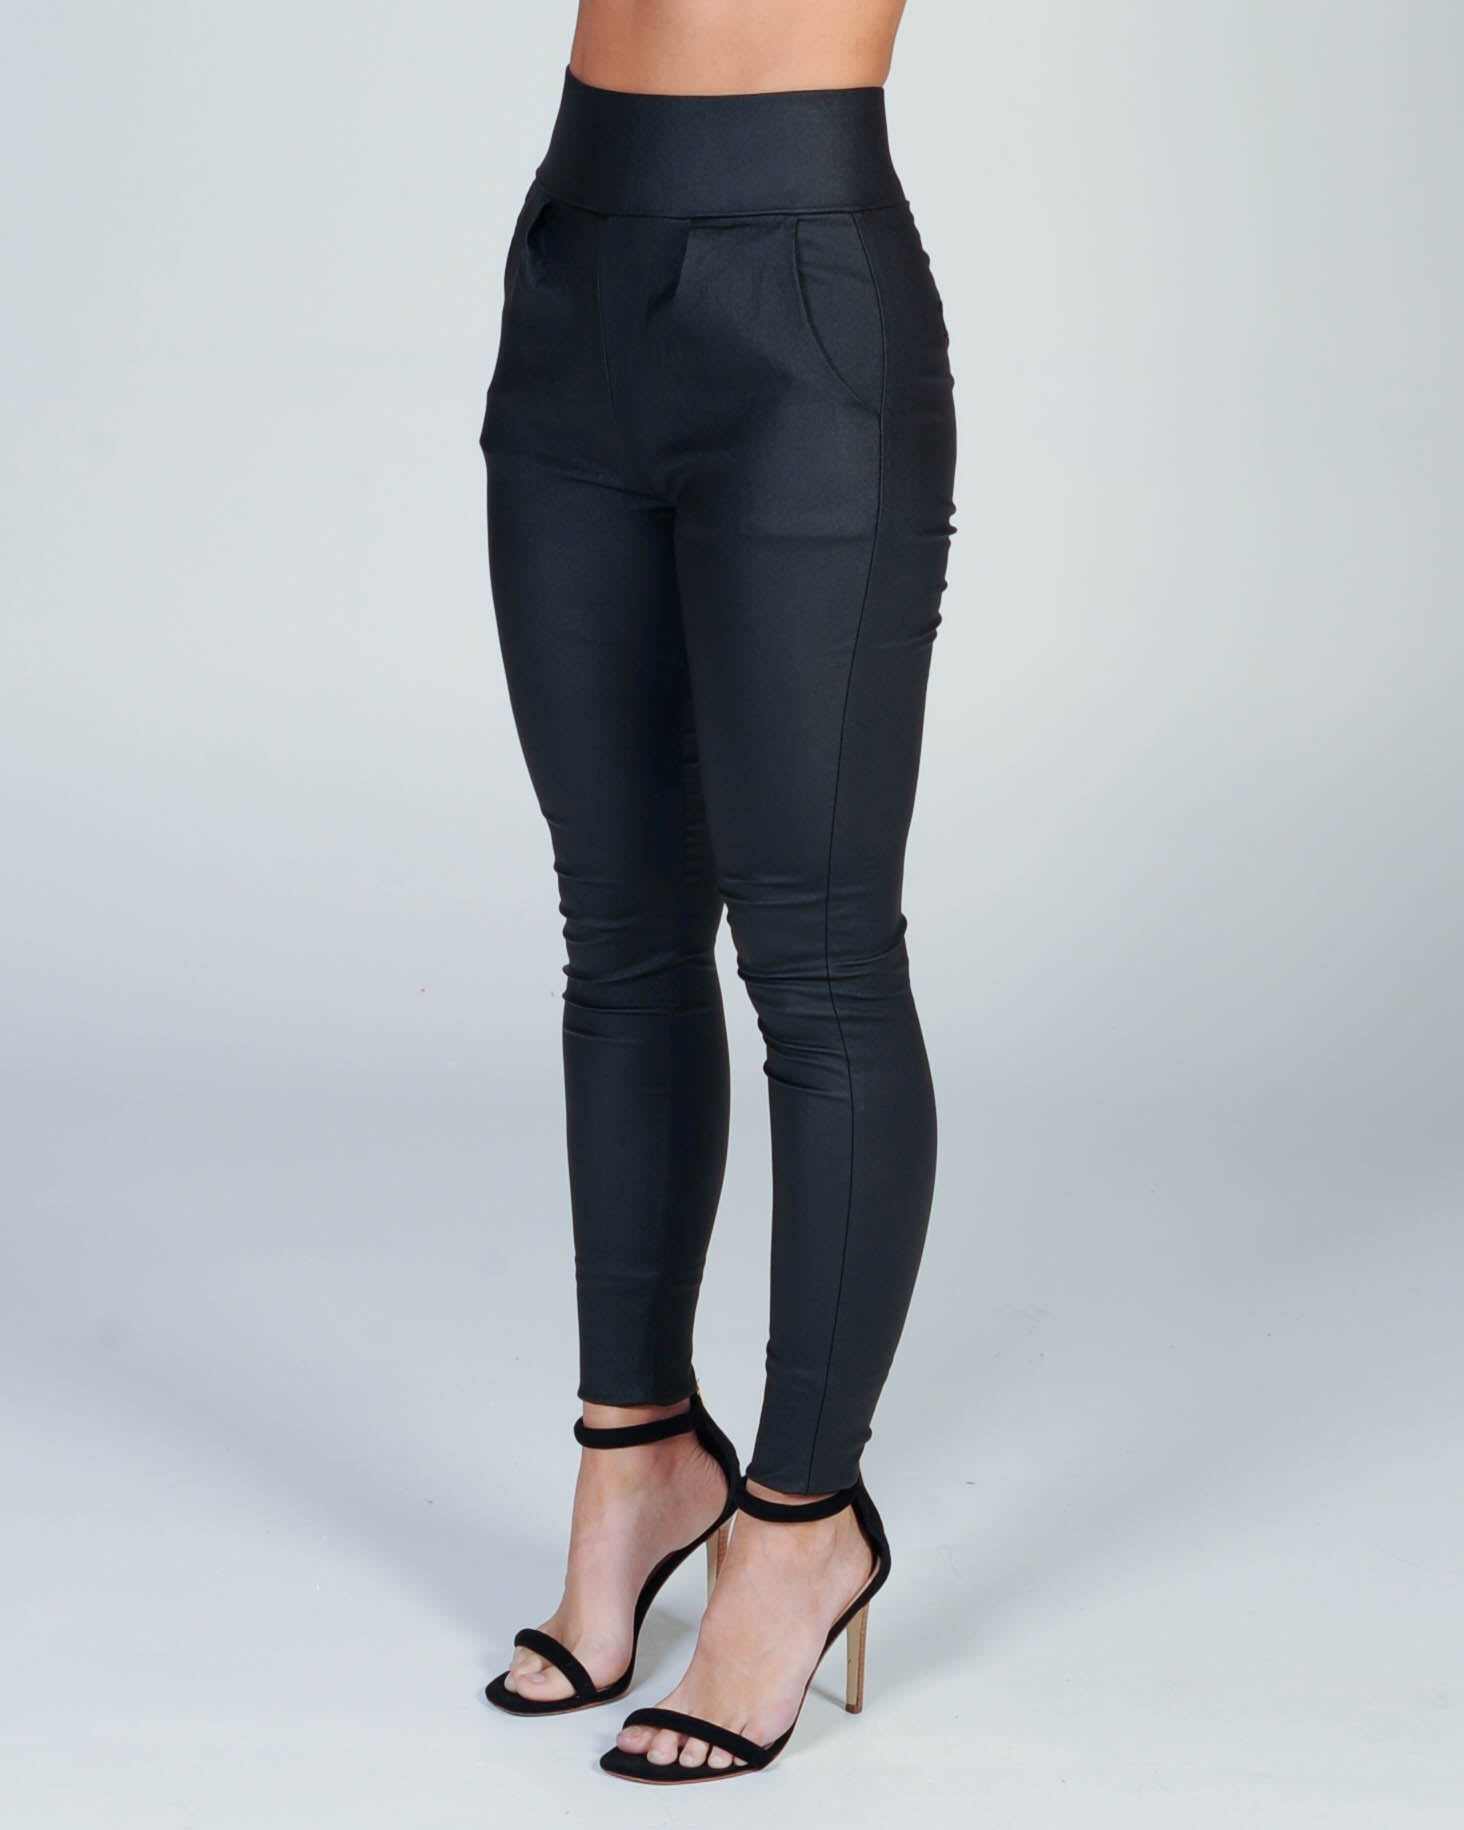 After Dark Wetlook Pant - Black